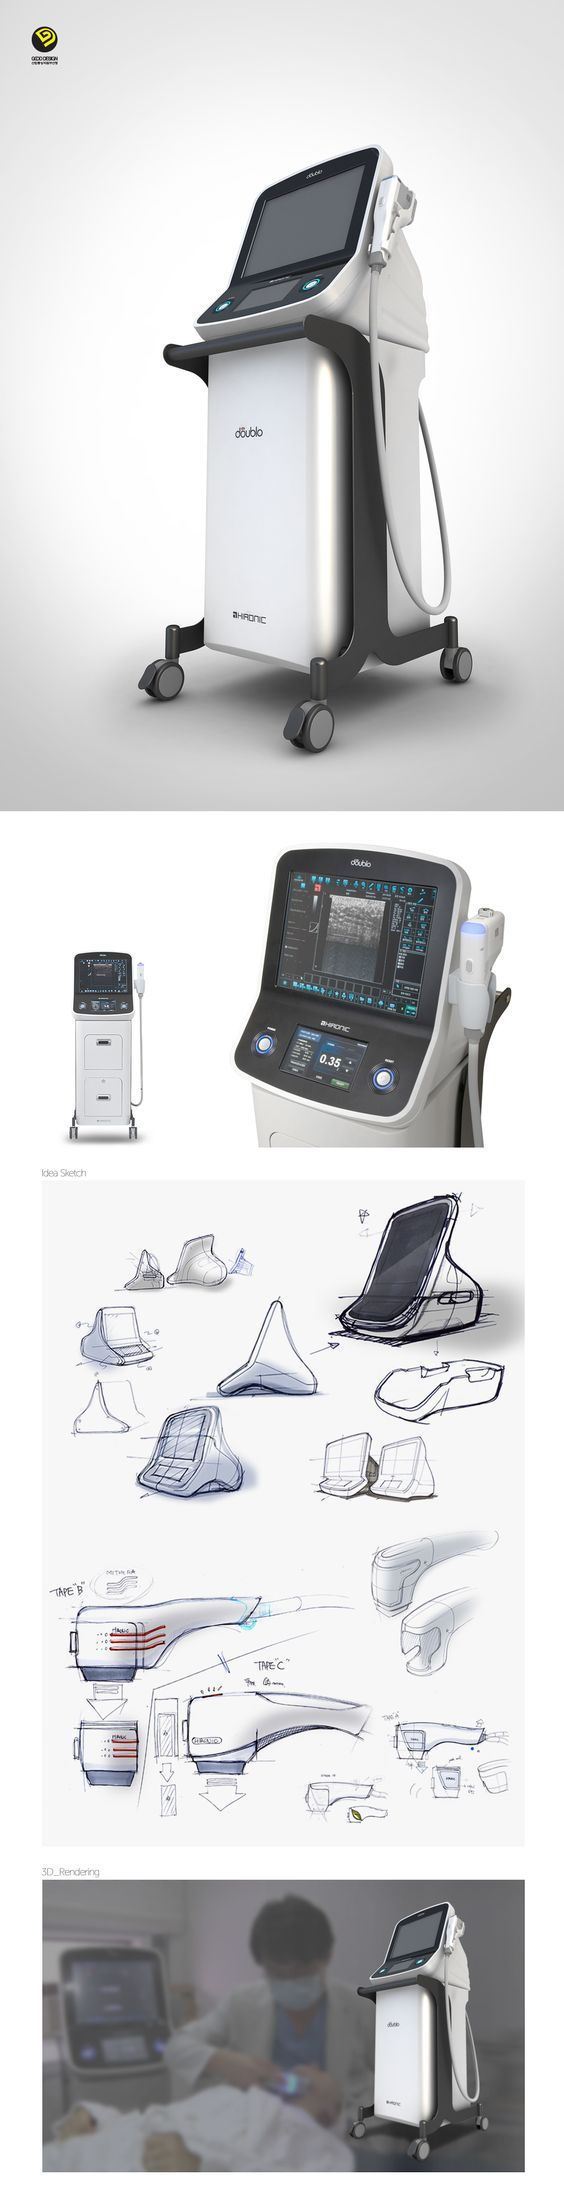 best industrial design images by janis on pinterest product